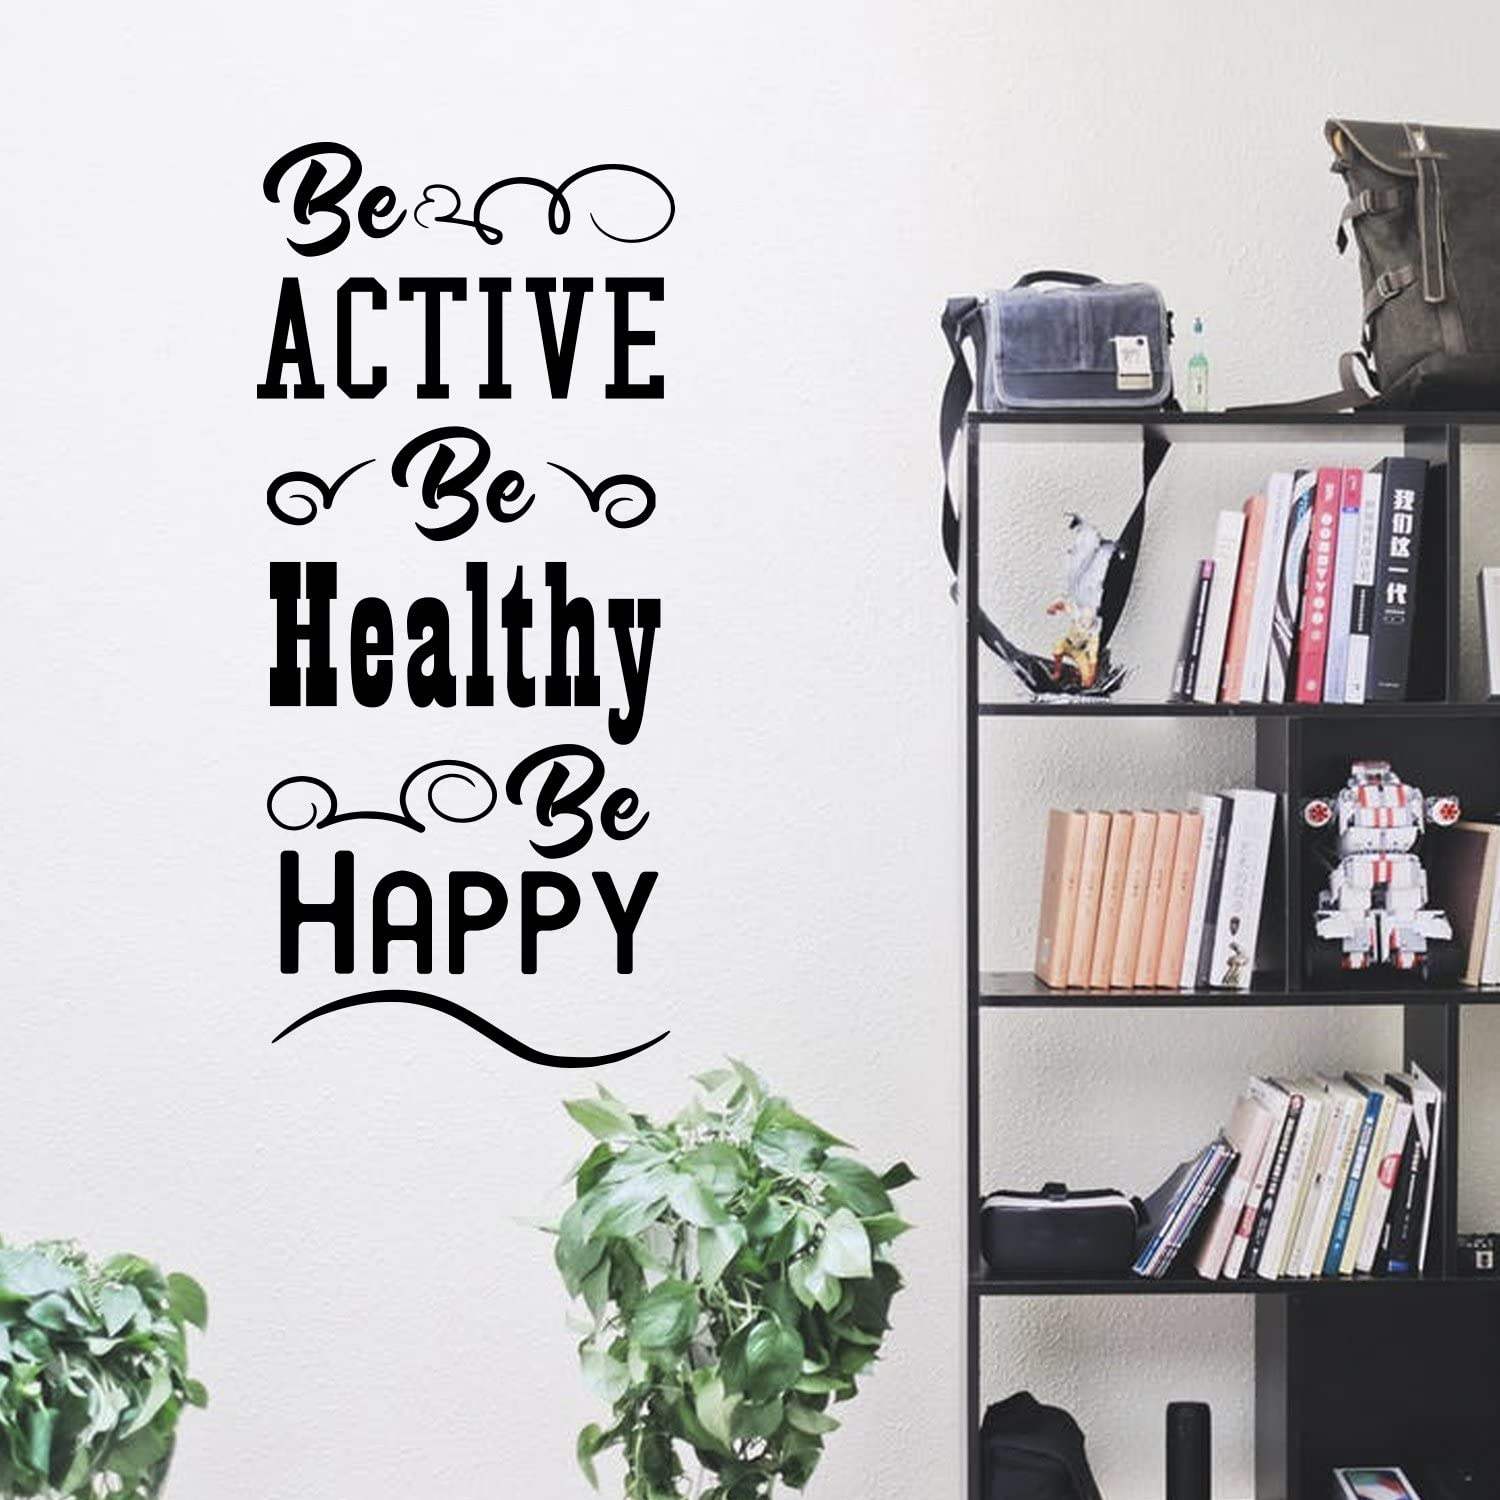 """Be Active Be Healthy Be Happy - Inspirational Gym Quote - Wall Art Decal - 40""""x 18"""" - Motivational Life Quotes Vinyl Decal - Bedroom Wall Decoration - Living Room Wall Art Decor"""